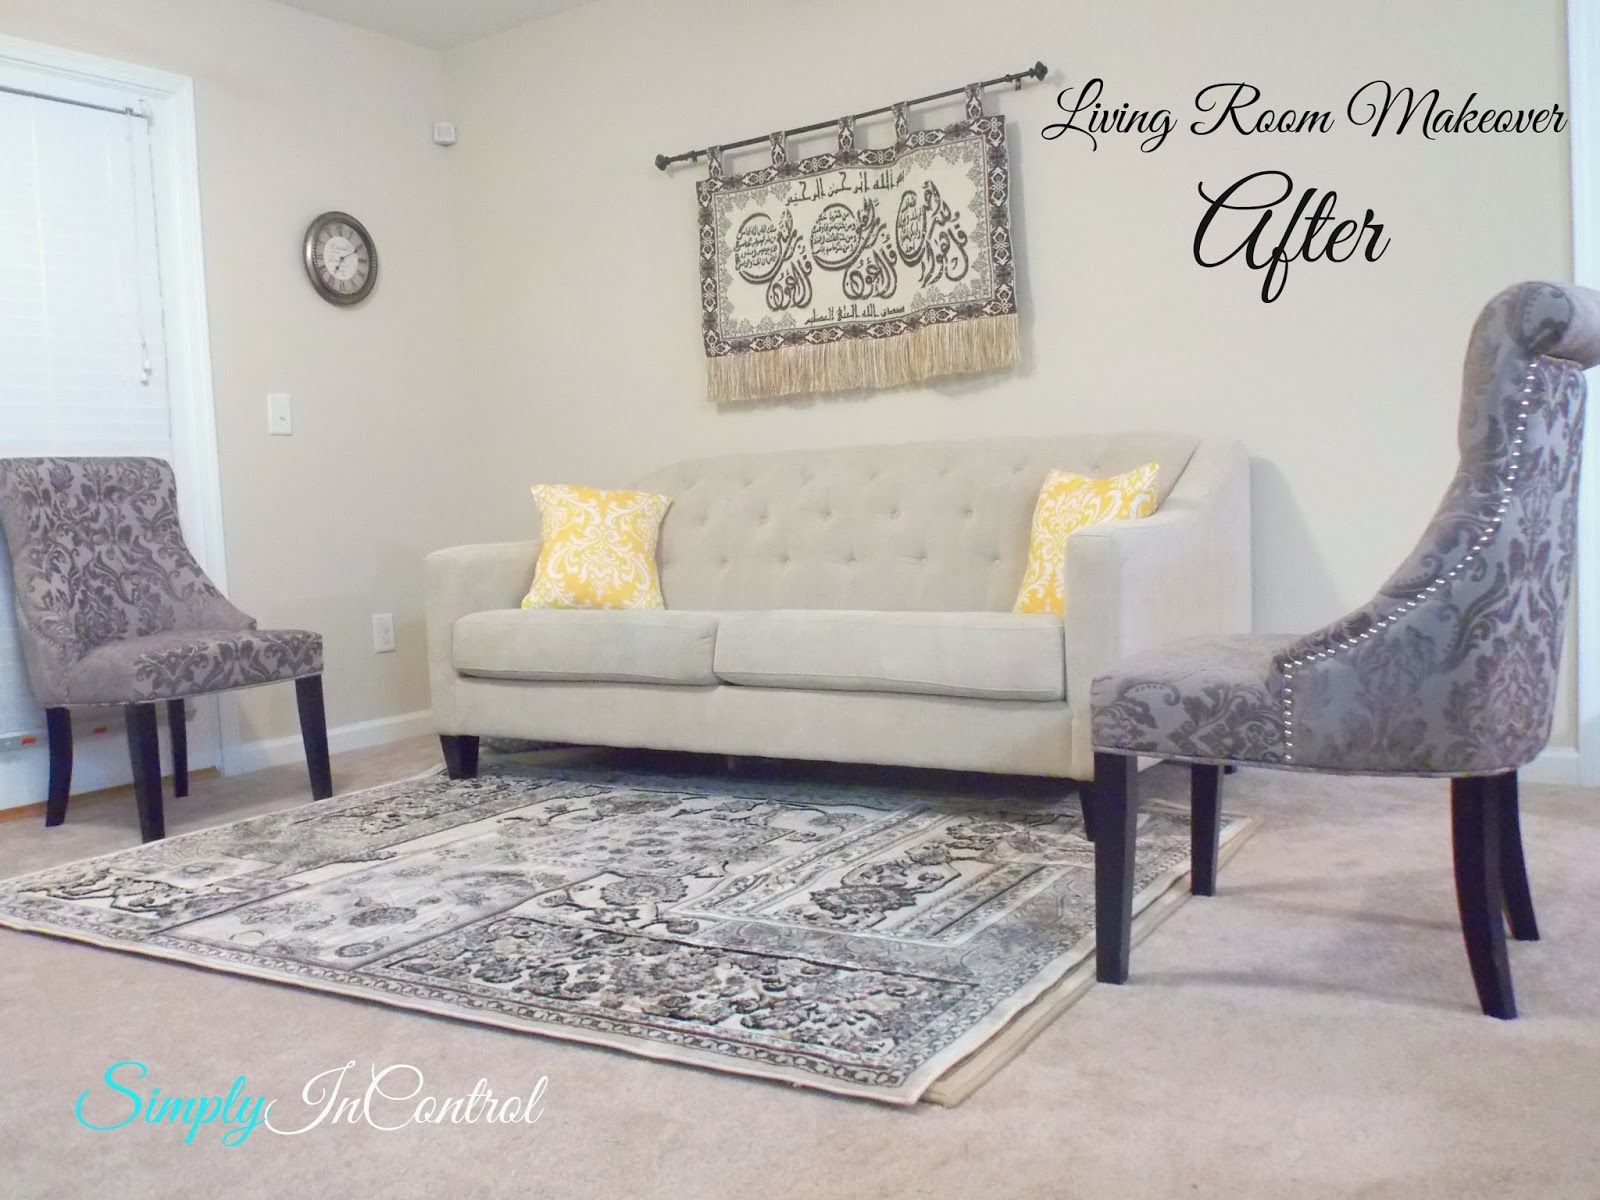 Apartment Living Room Makeover - After! Home Goods has the BEST ...